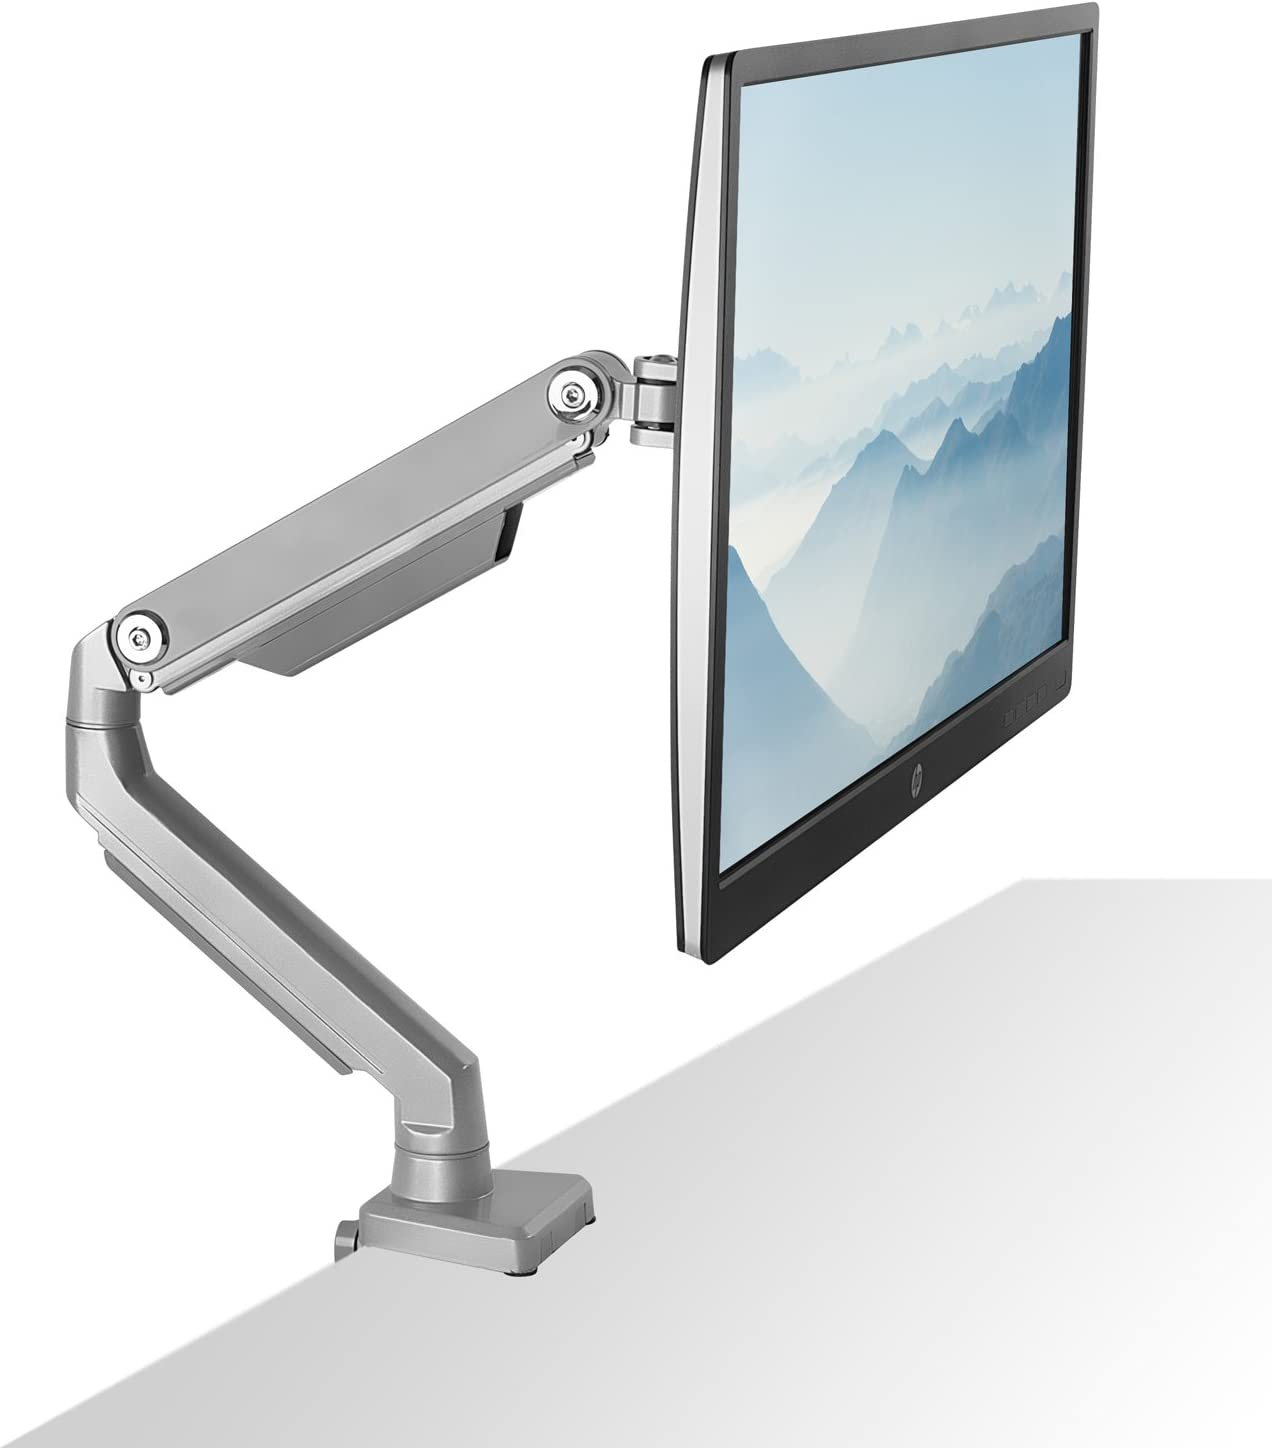 Mount-It! Single Monitor Arm Mount  Desk Stand  Full Motion Height  Adjustable Articulating Mechanical Spring Arm  Fits 9 9 9 9 9 Inch  VESA